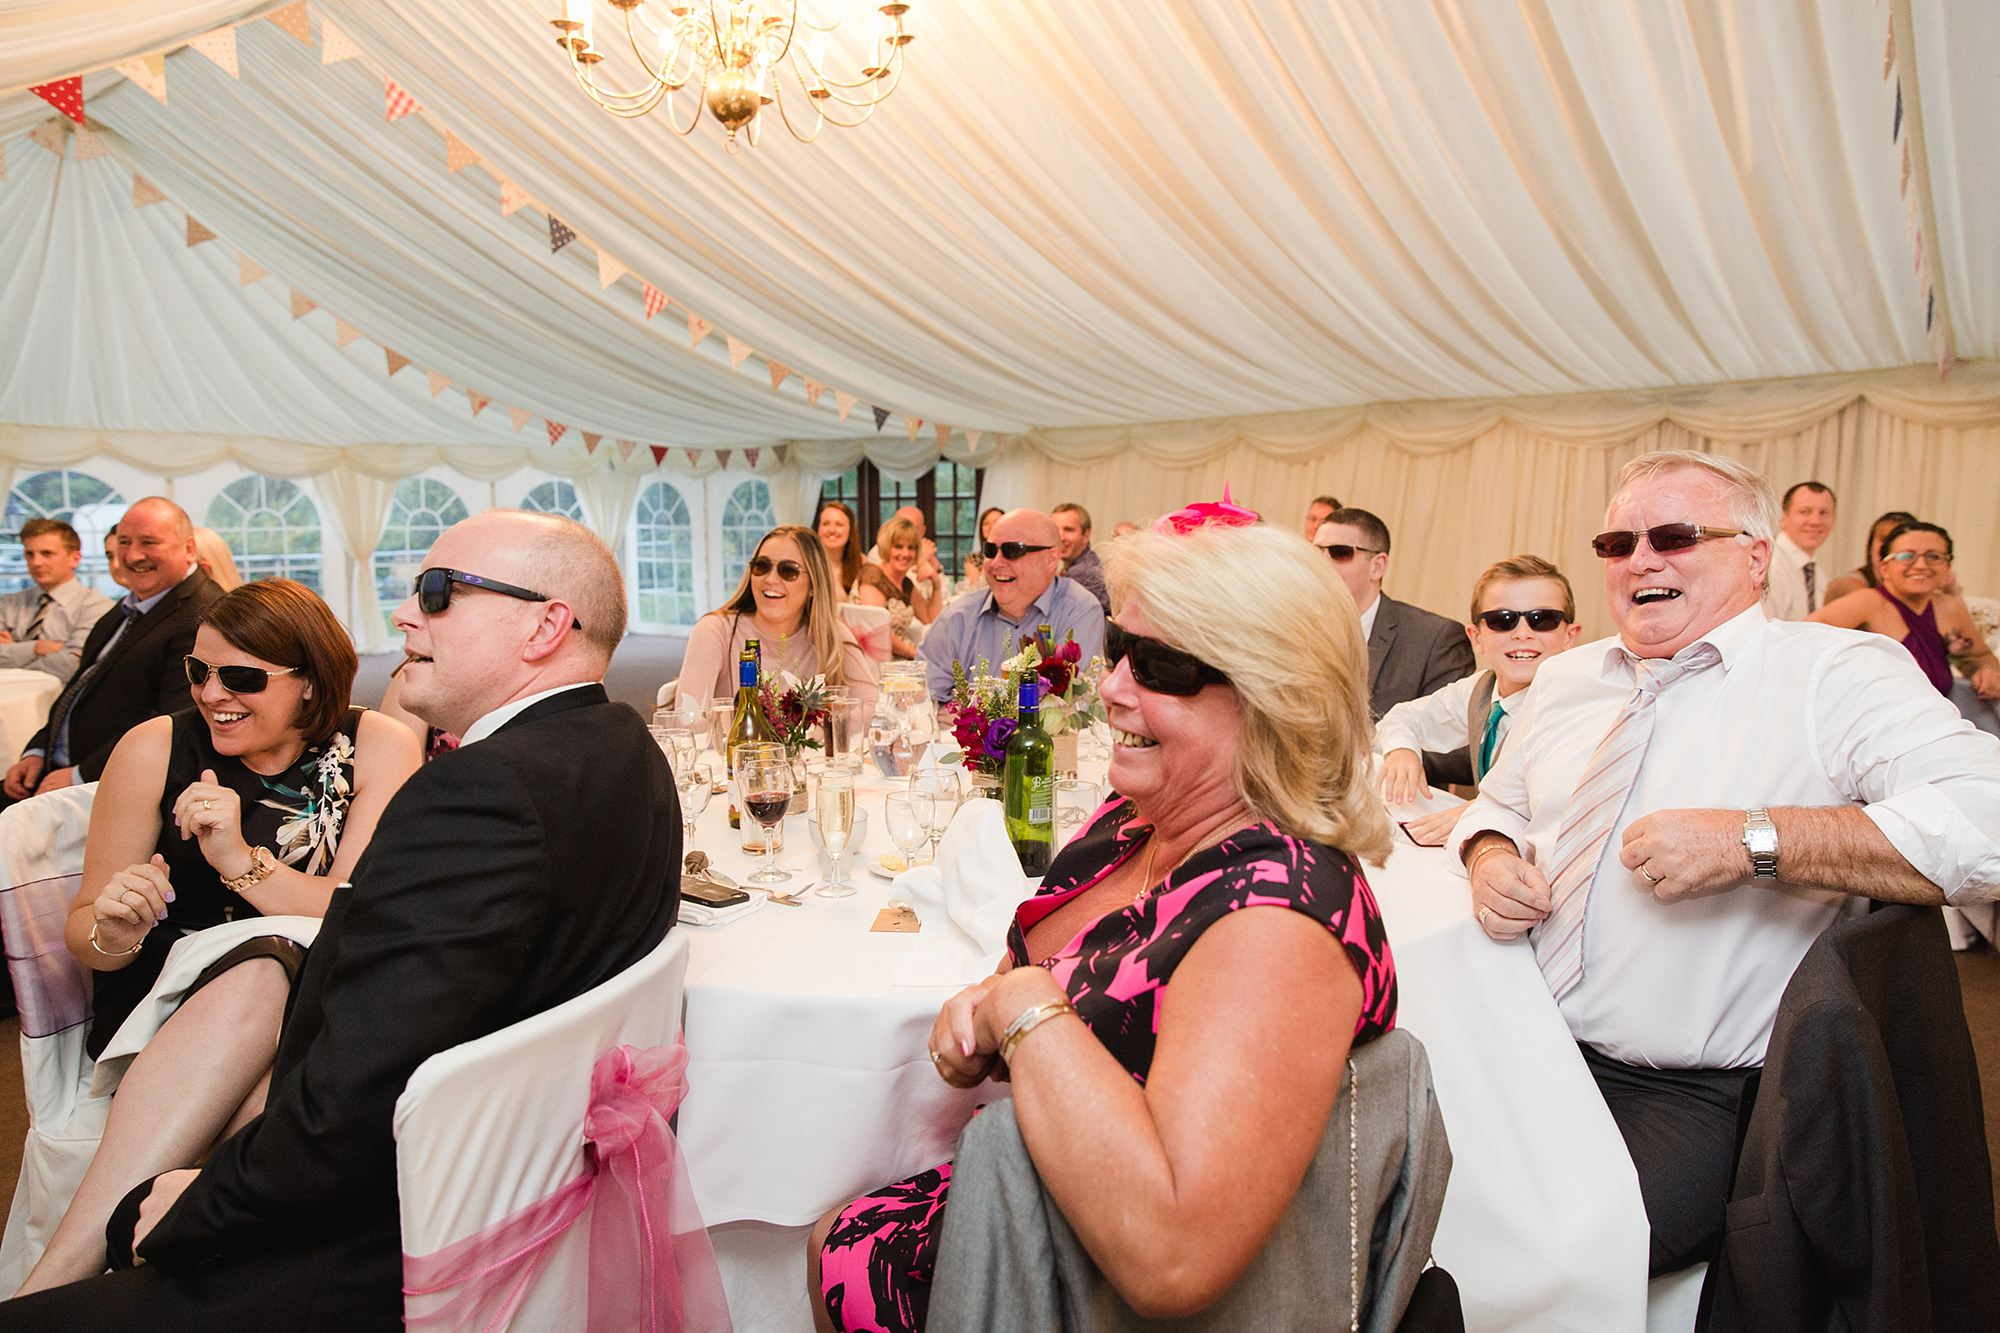 A fun wedding portrait of guests wearing sunglasses during speeches